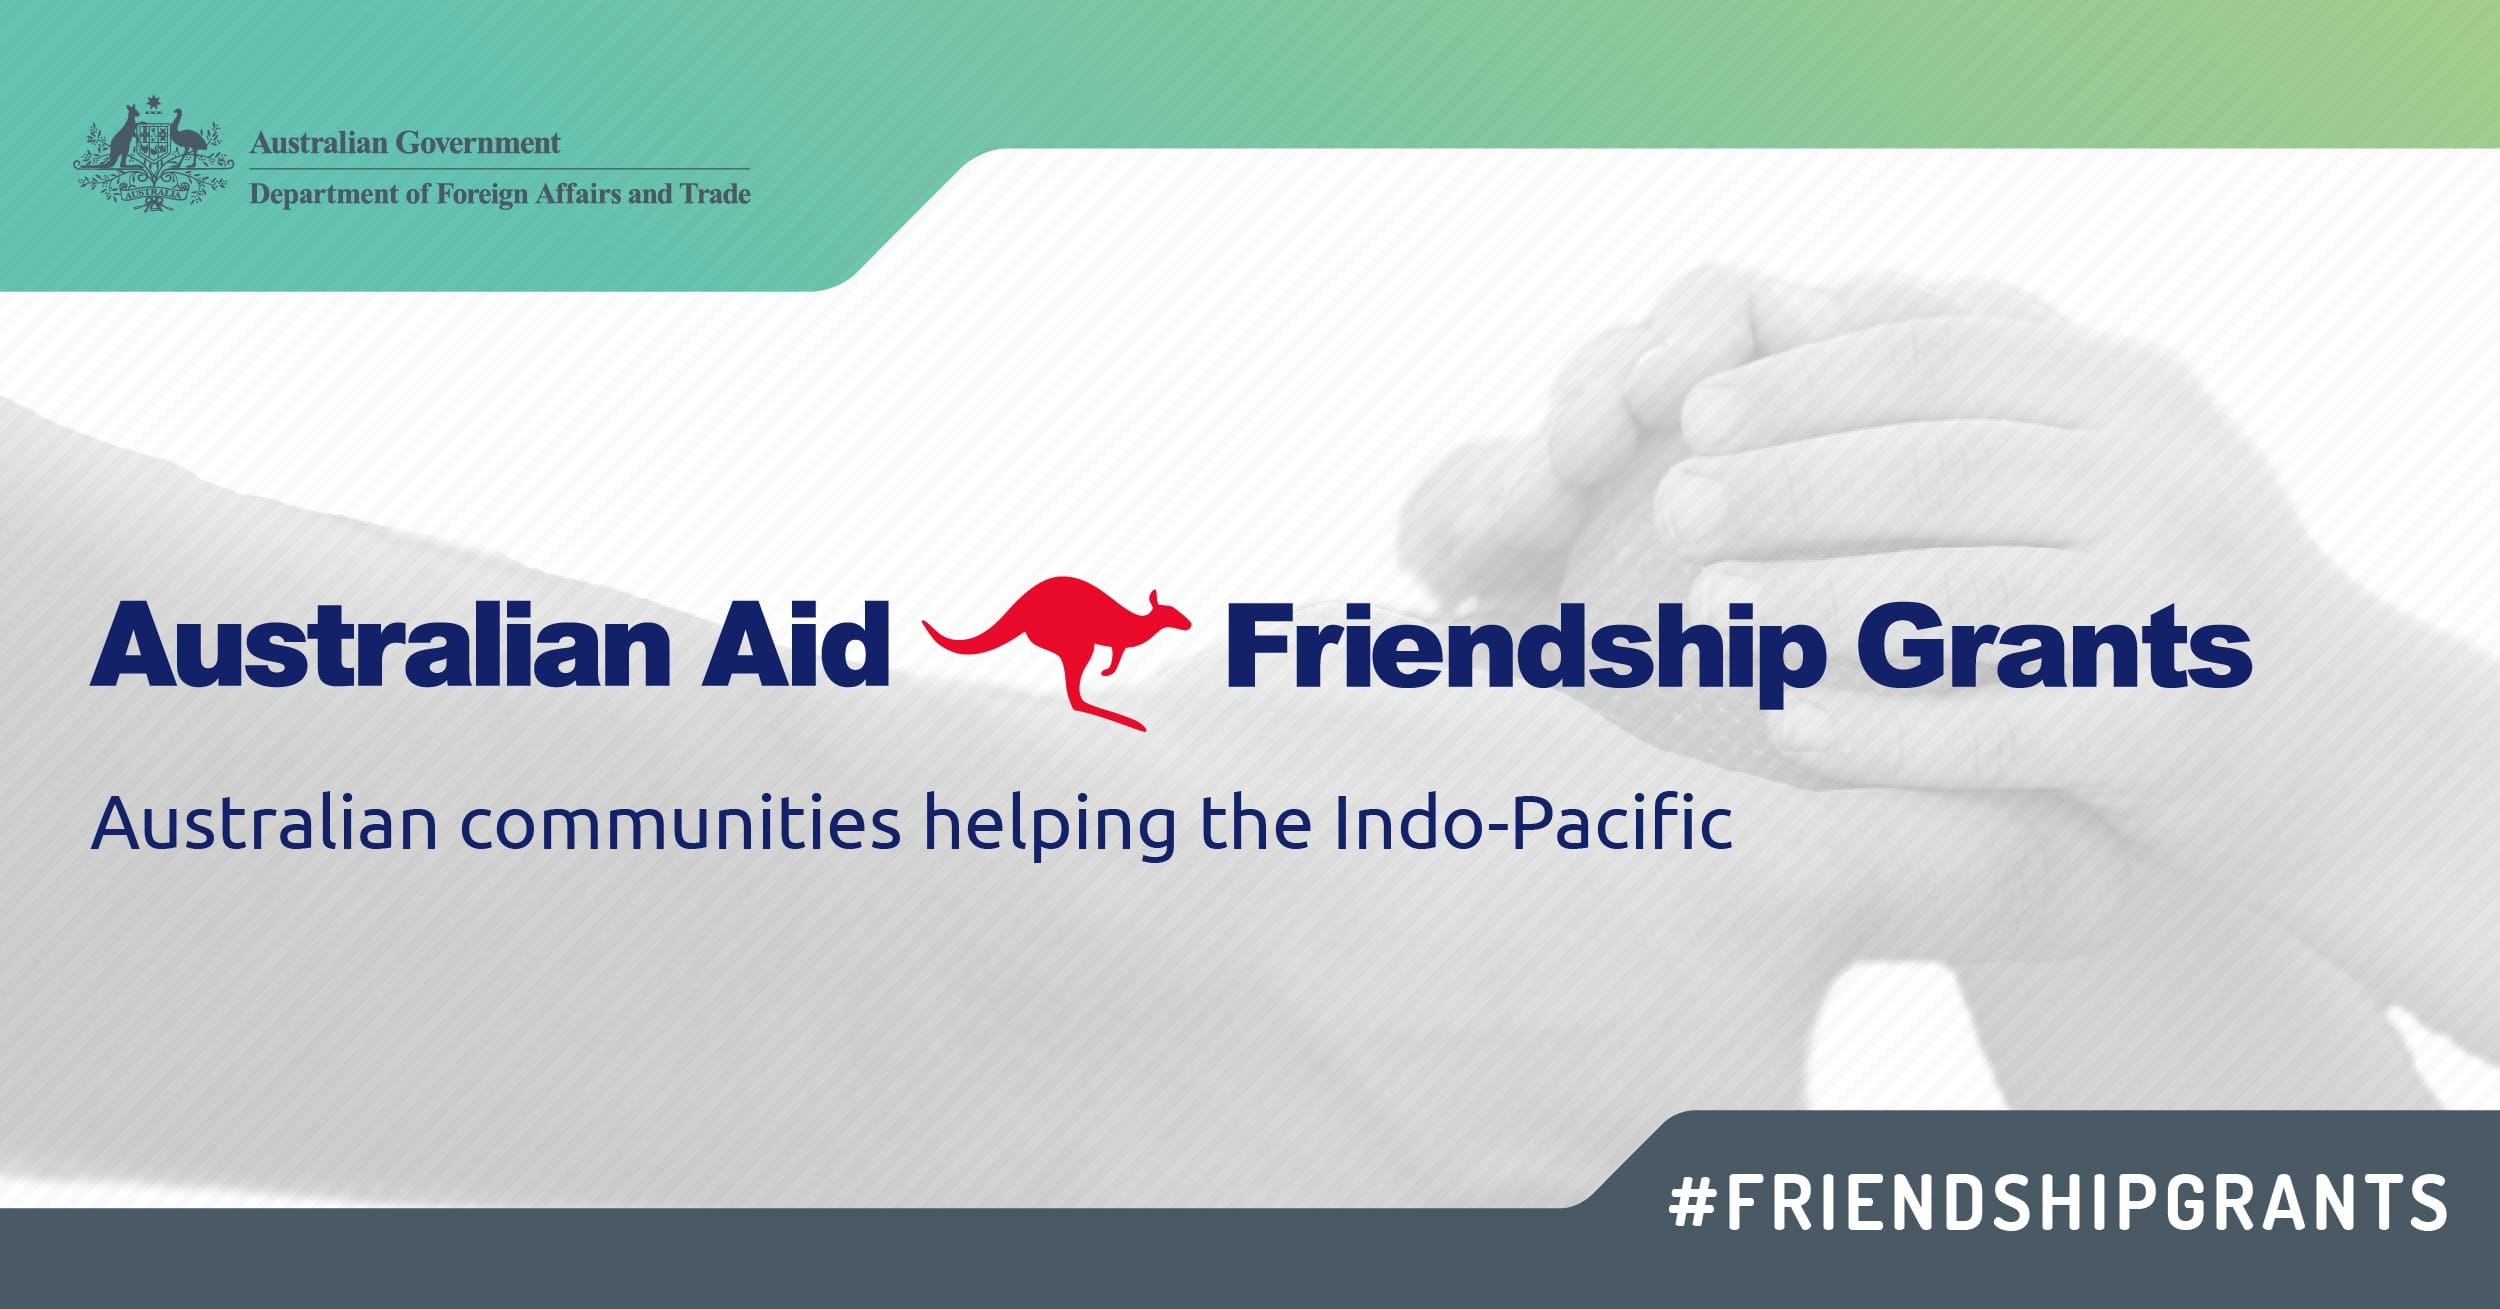 Australian Aid Friendship Grants